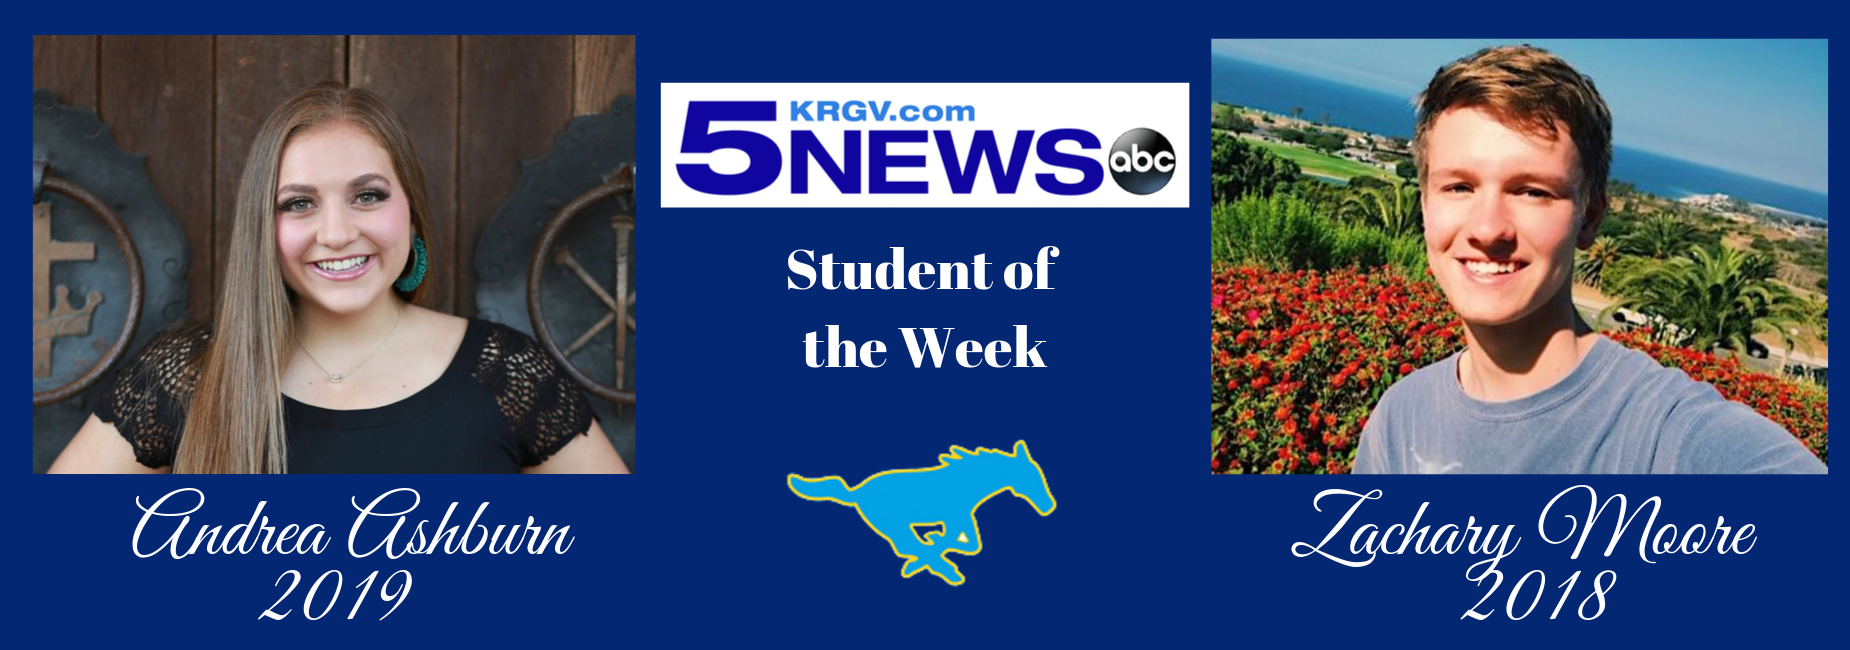 KRGV students of the week posing for camera